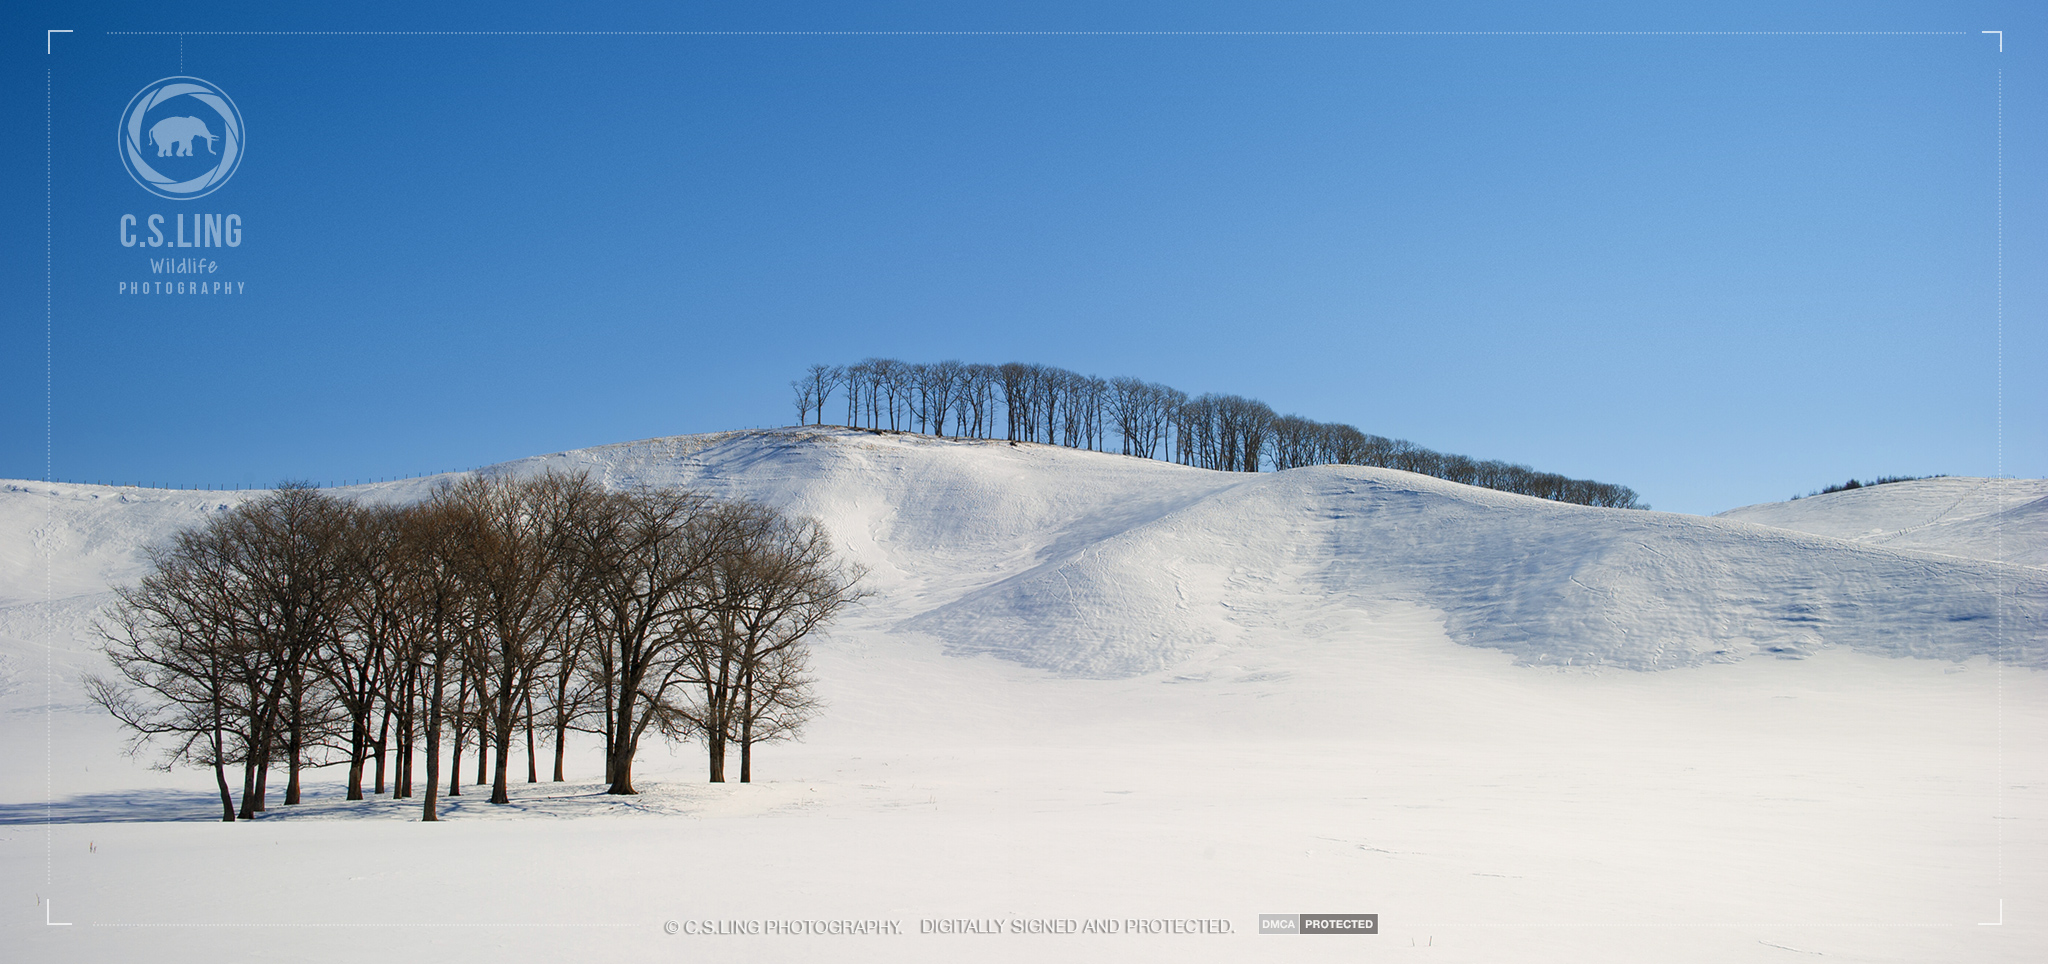 Japan Snow Landscape Photo by C.S.Ling